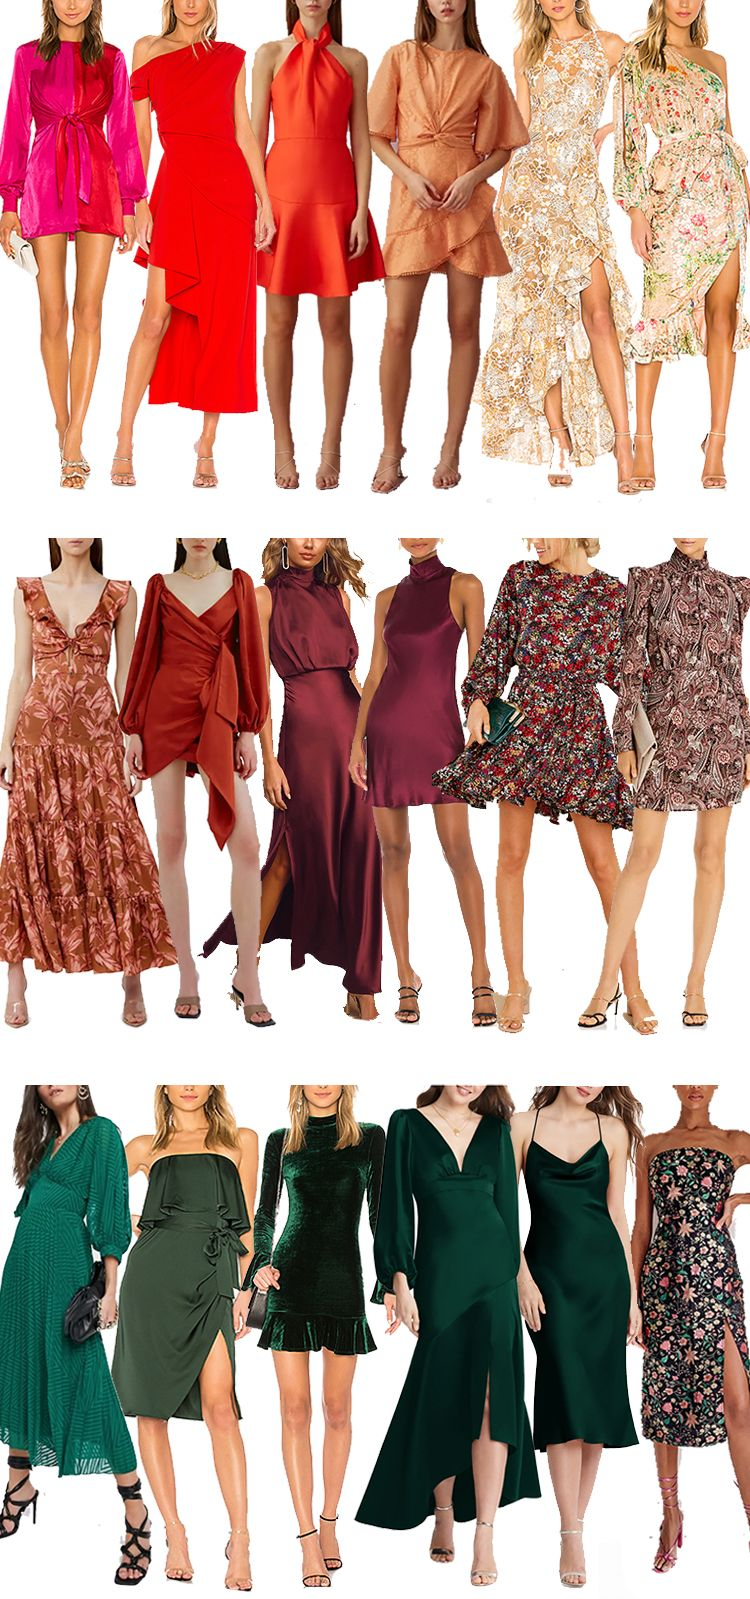 36 Fall Wedding Guest Dresses A Lonestar State Of Southern Fall Wedding Guest Dress Wedding Guest Dress Fall Wedding Guest [ 1599 x 750 Pixel ]